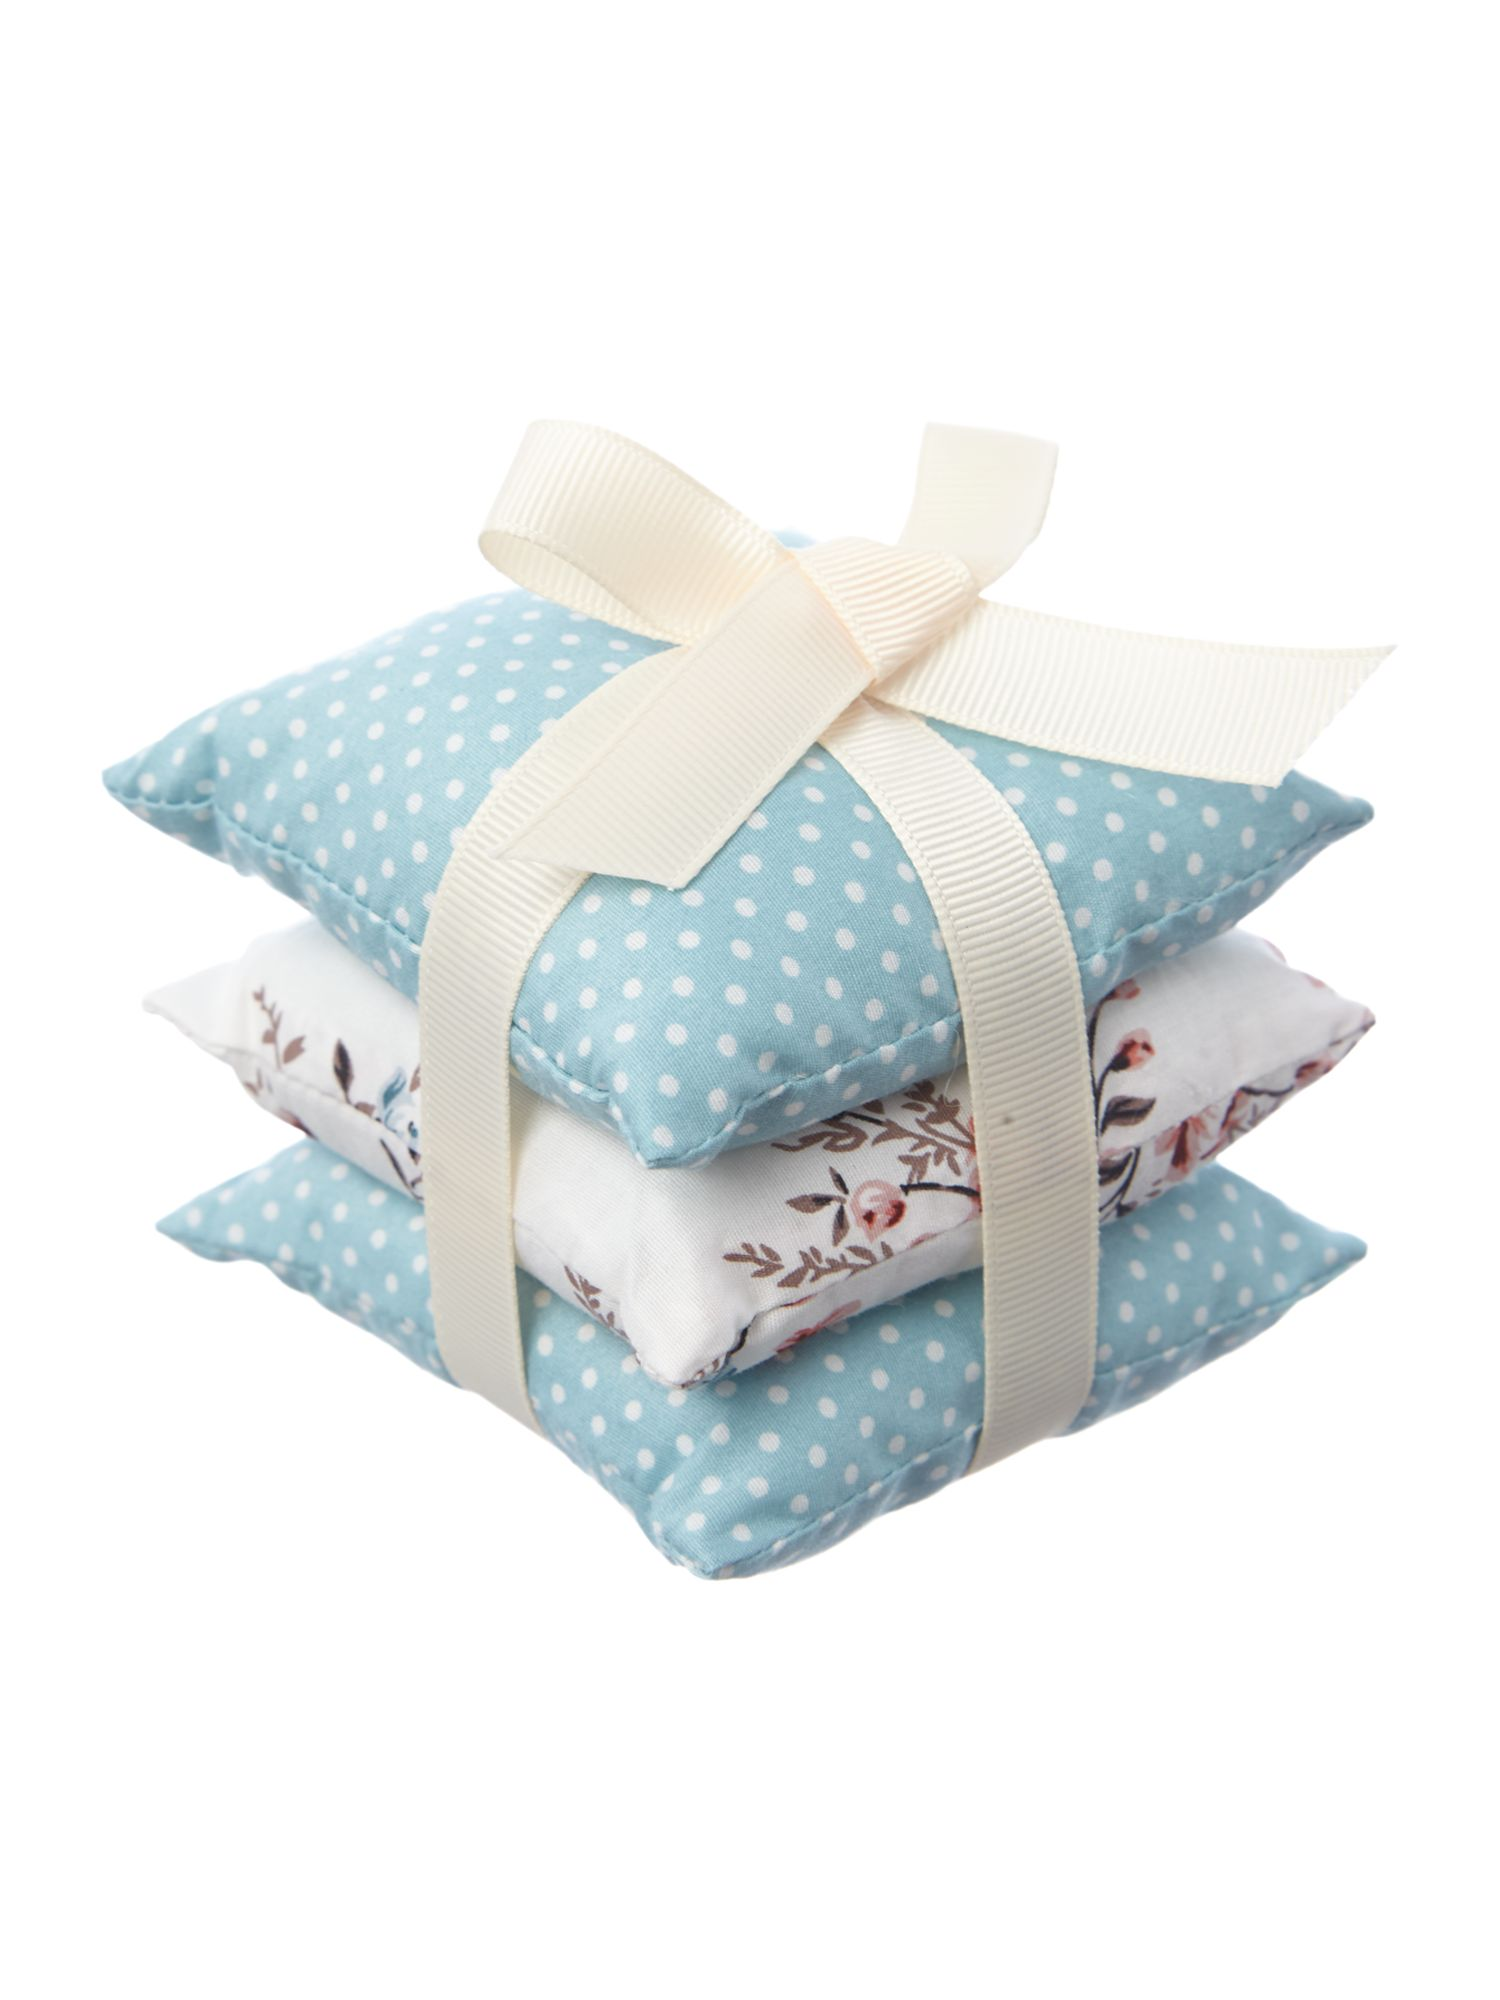 Set 3 fabric pillows